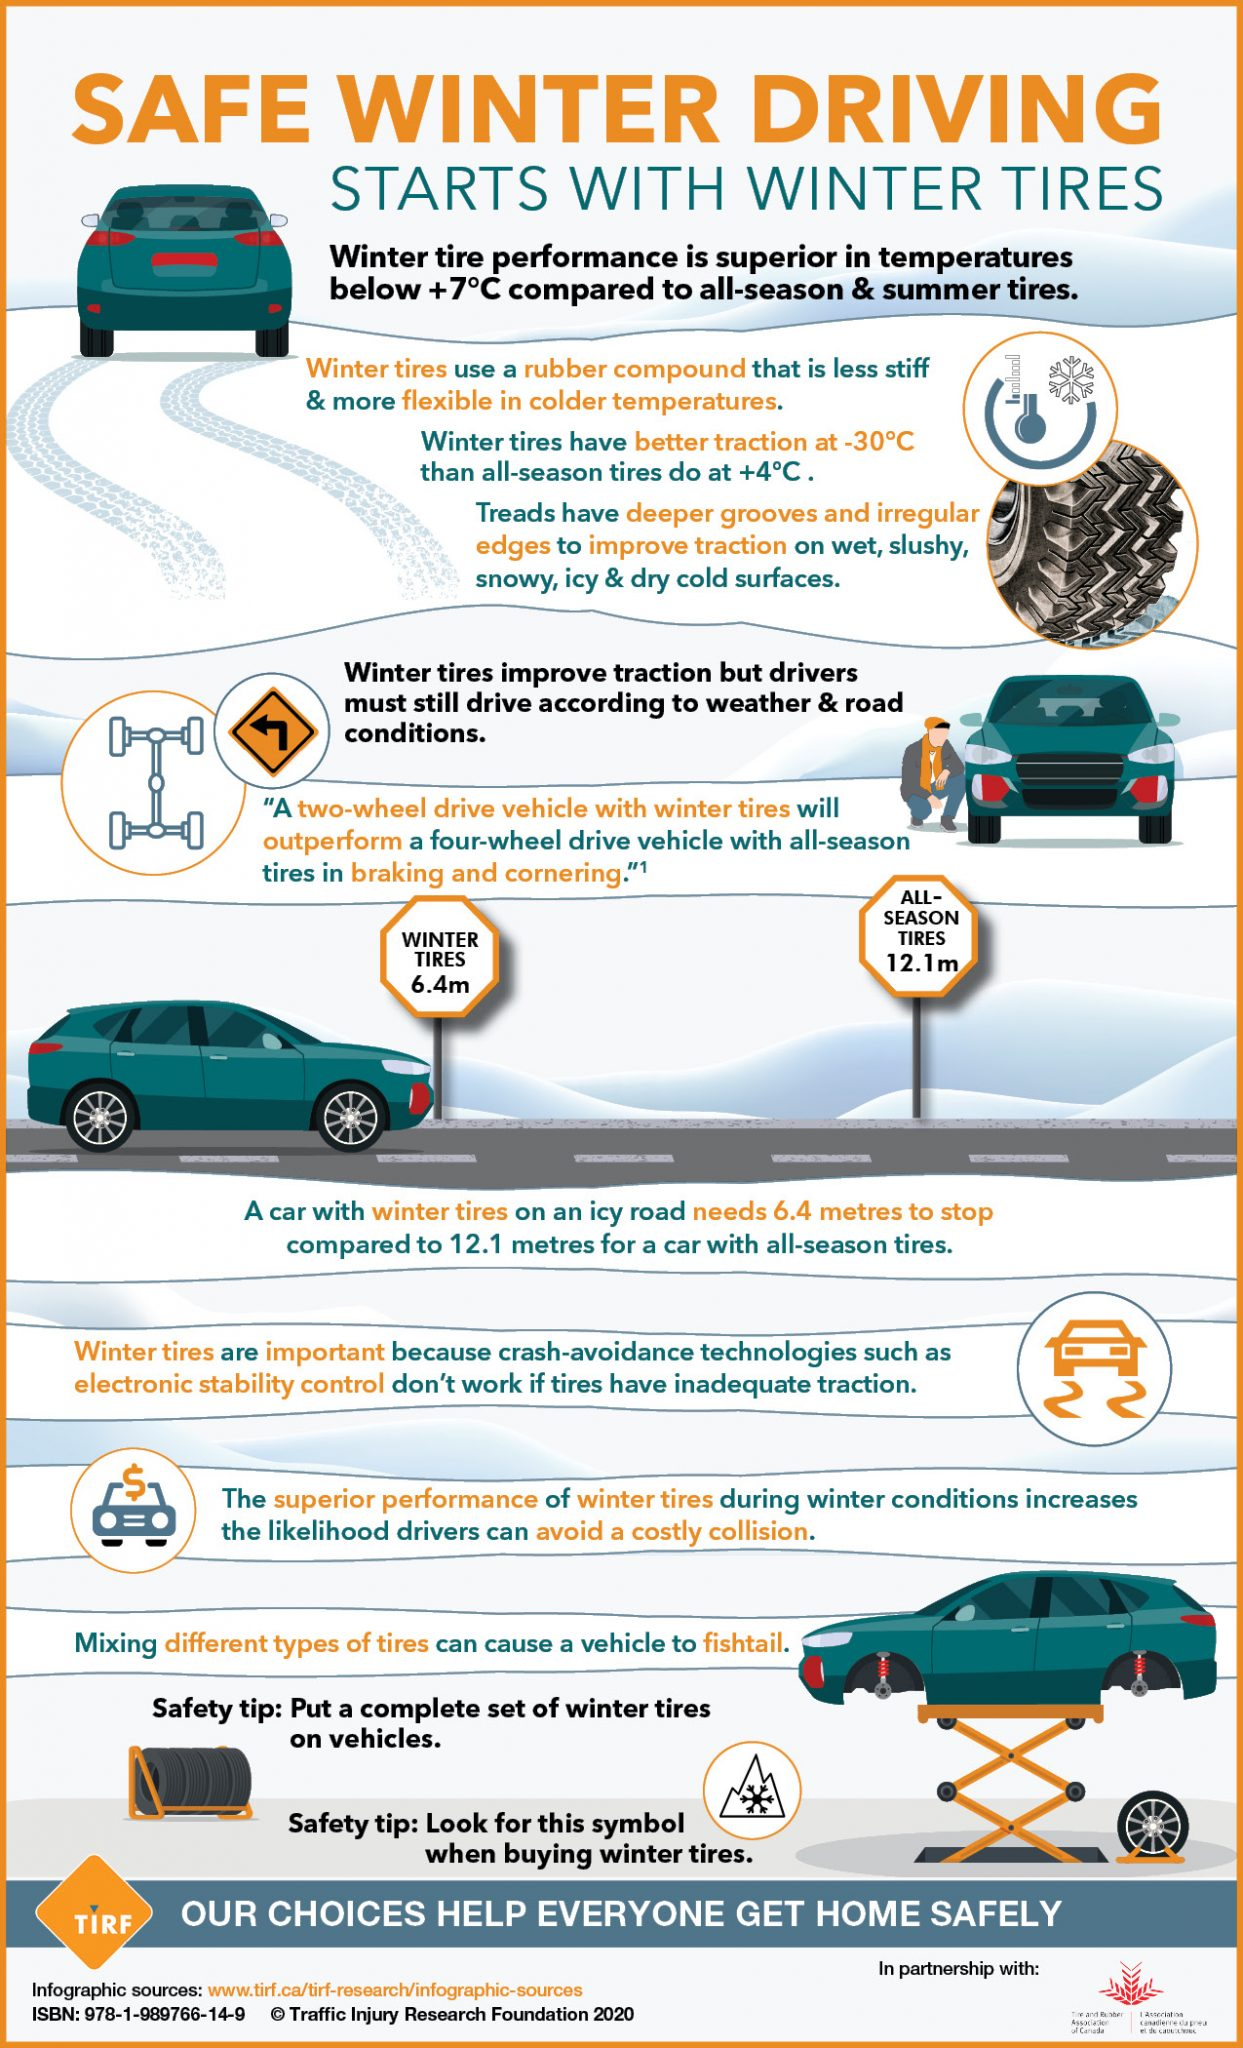 Safe Winter Driving Starts with Winter Tires